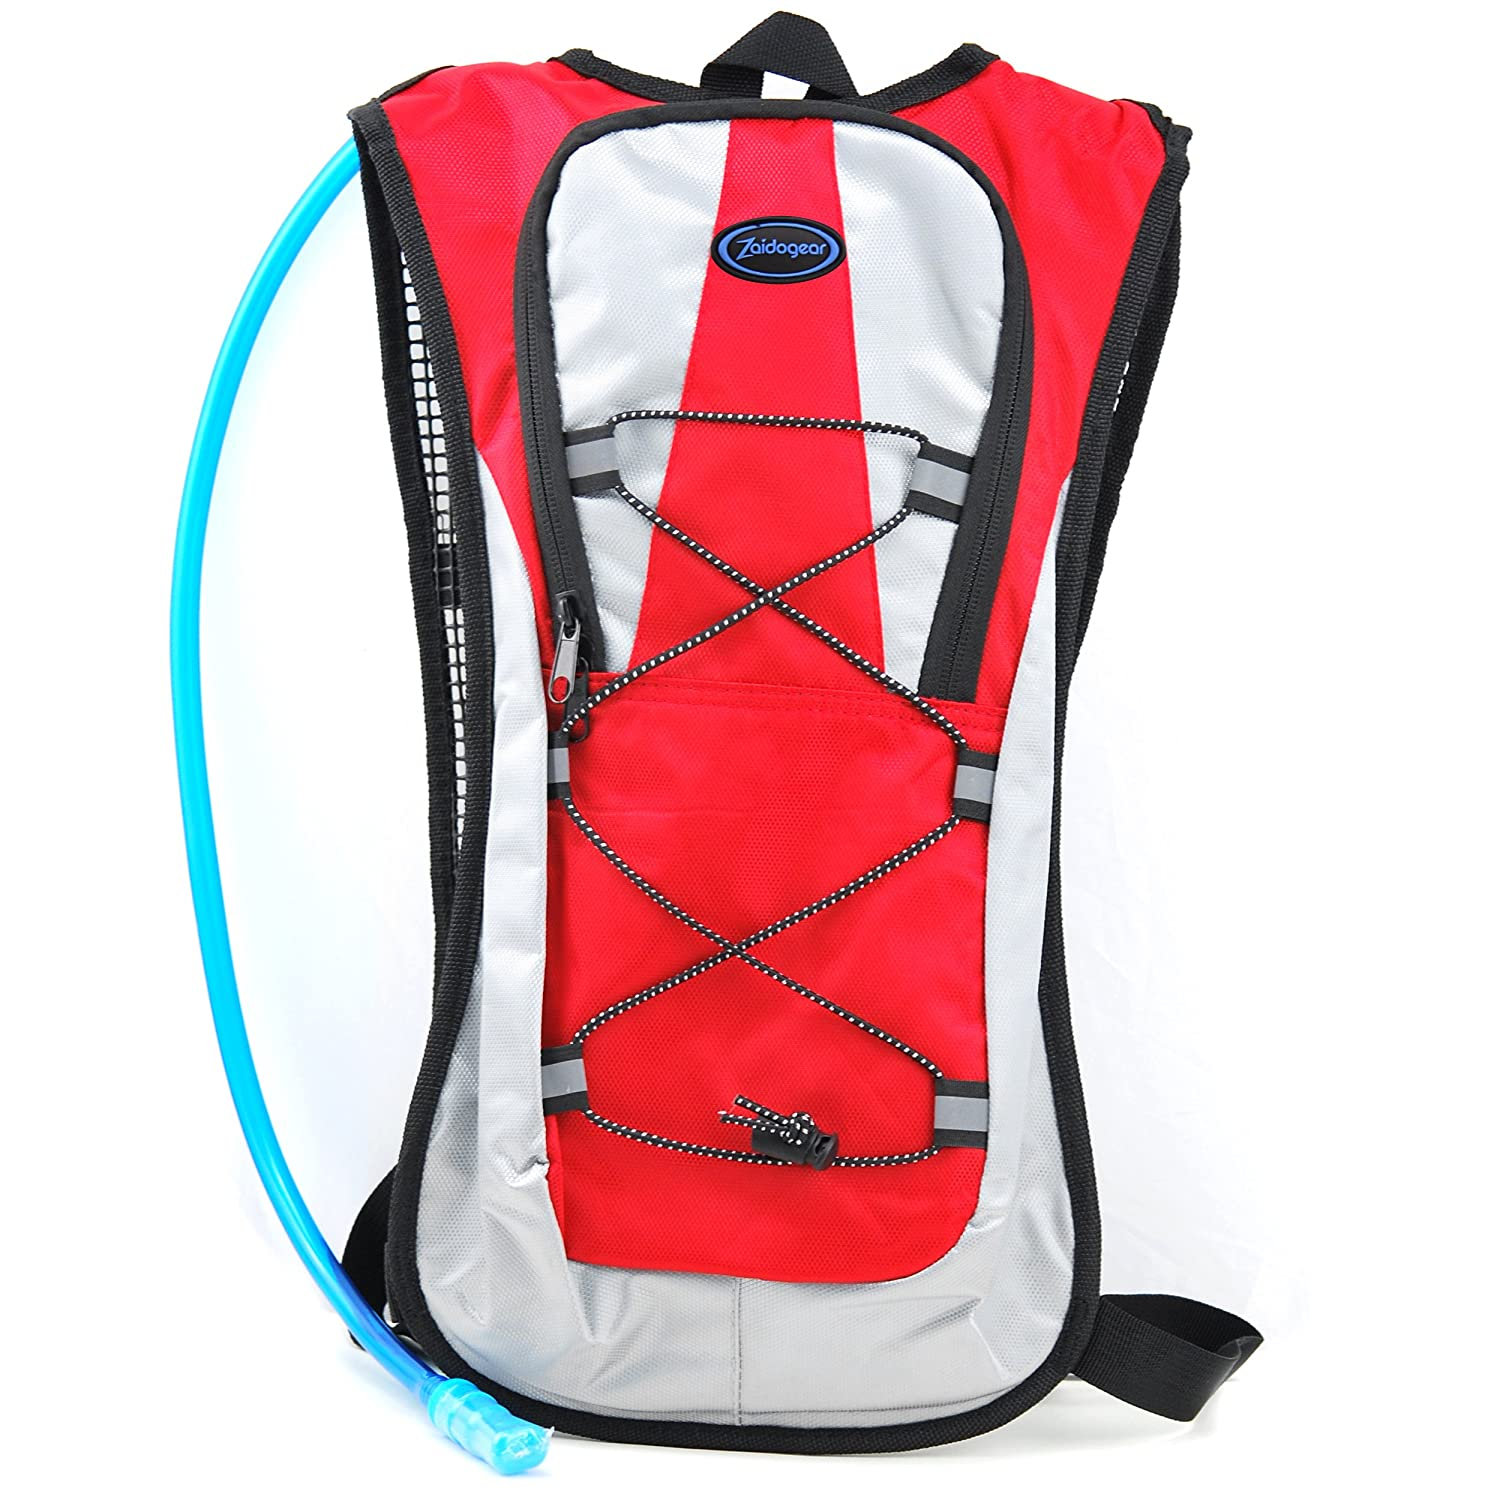 a0e3f5dcf660 Amazon.com : Zaidogear Hydration Pack with 2L Backpack BPA Free ...